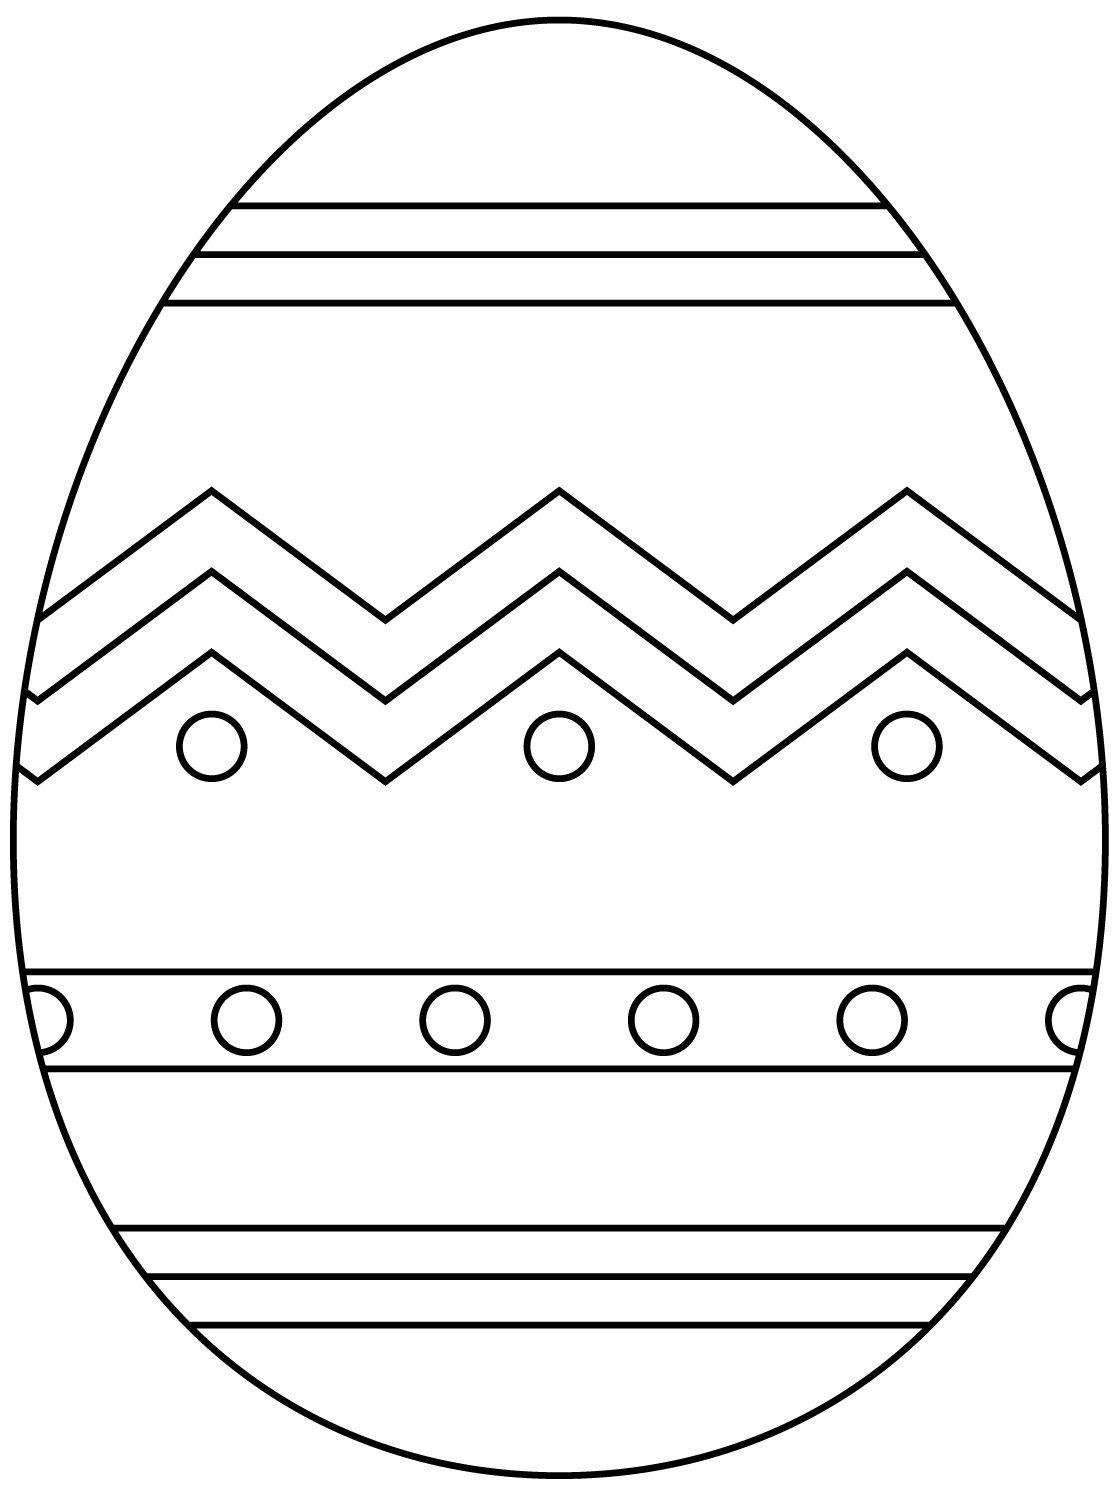 Abstract Pattern Easter Egg